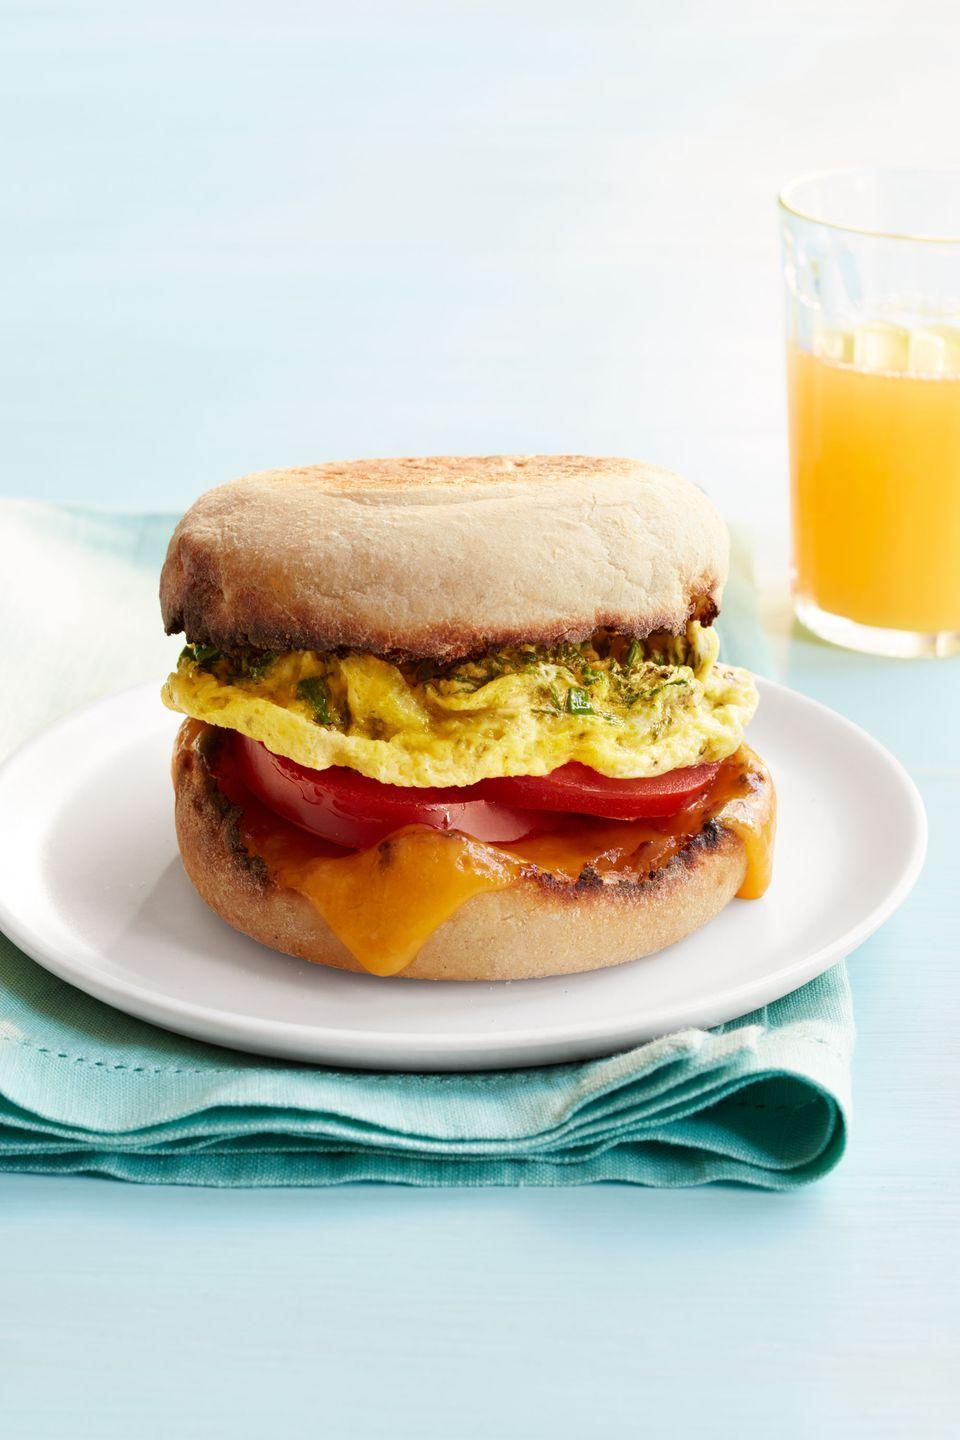 "<p>This protein-packed breakfast is ready in five minutes thanks to a little help from your <a href=""https://www.womansday.com/food-recipes/cooking-tips/a51830/youll-be-shocked-to-hear-why-you-shouldnt-reheat-these-common-foods/"" rel=""nofollow noopener"" target=""_blank"" data-ylk=""slk:trusty microwave"" class=""link rapid-noclick-resp"">trusty microwave</a>.</p><p><a href=""https://www.womansday.com/food-recipes/food-drinks/recipes/a53590/egg-sandwich/"" rel=""nofollow noopener"" target=""_blank"" data-ylk=""slk:Get the No-Skillet Egg Sandwich recipe."" class=""link rapid-noclick-resp""><em>Get the No-Skillet Egg Sandwich recipe.</em></a></p>"